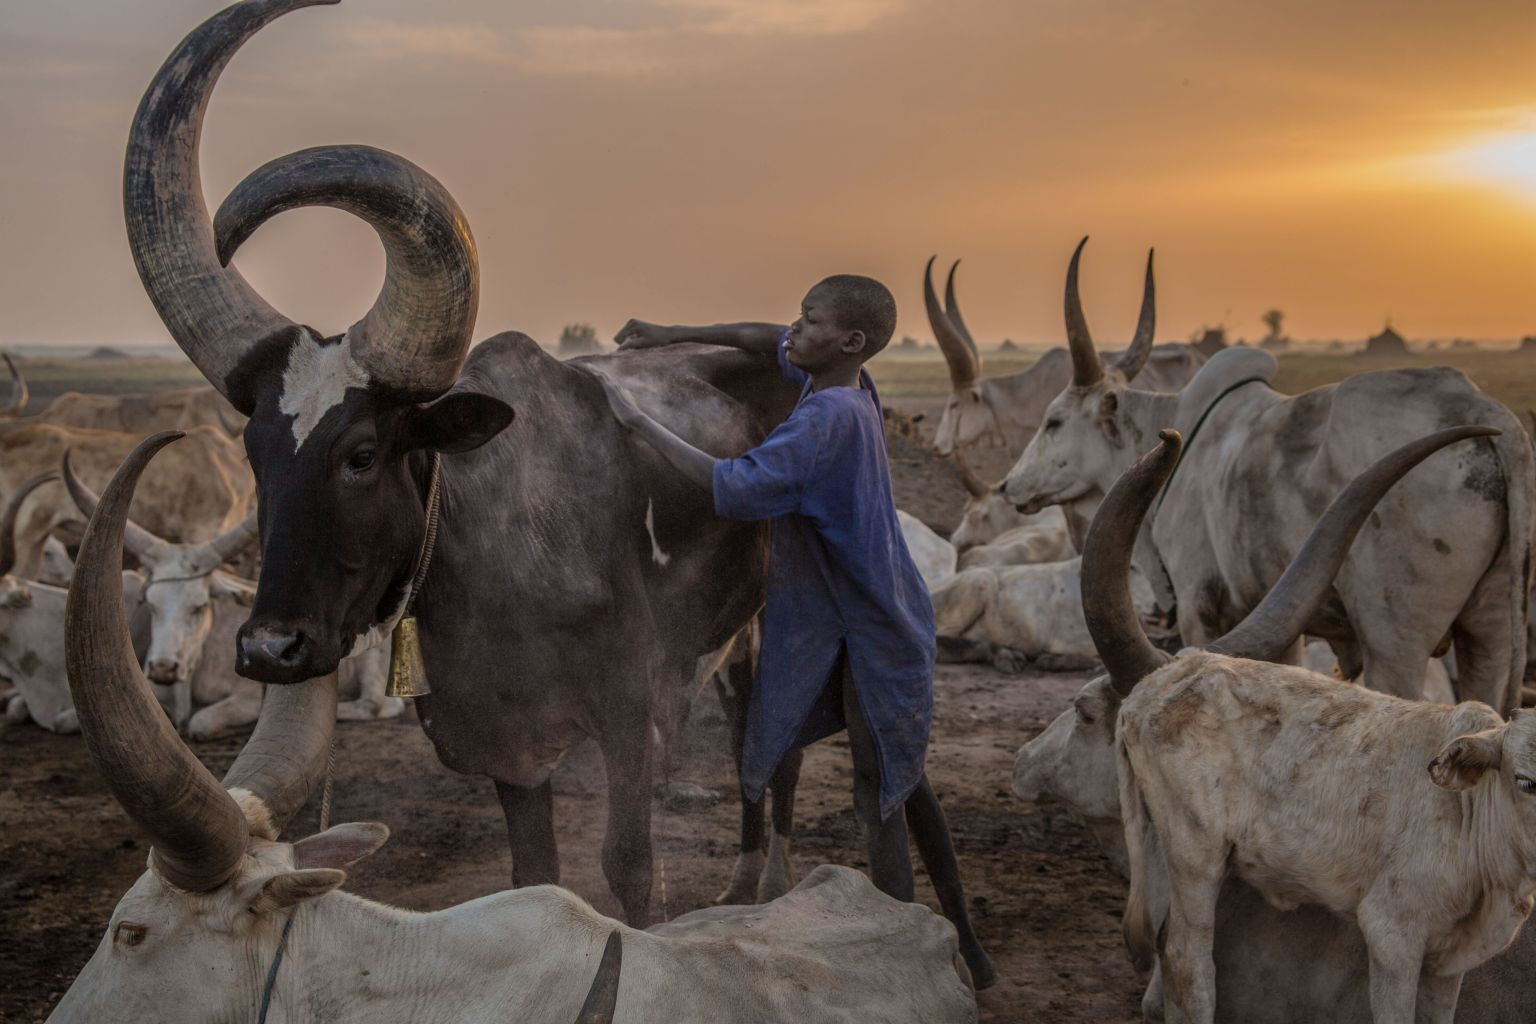 TOPSHOT - ASudanese boy from Dinka tribe tends a cow in the early morning at their cattle camp in Mingkaman, Lakes State, South Sudan on March 4, 2018. During South Sudans dry season between December and May, pastoralists from the highlands move to the lowlands and close to the Nile, where they set up big cattle camps to make sure their animals are close to grazing land.  / AFP PHOTO / Stefanie GLINSKI        (Photo credit should read STEFANIE GLINSKI/AFP/Getty Images)